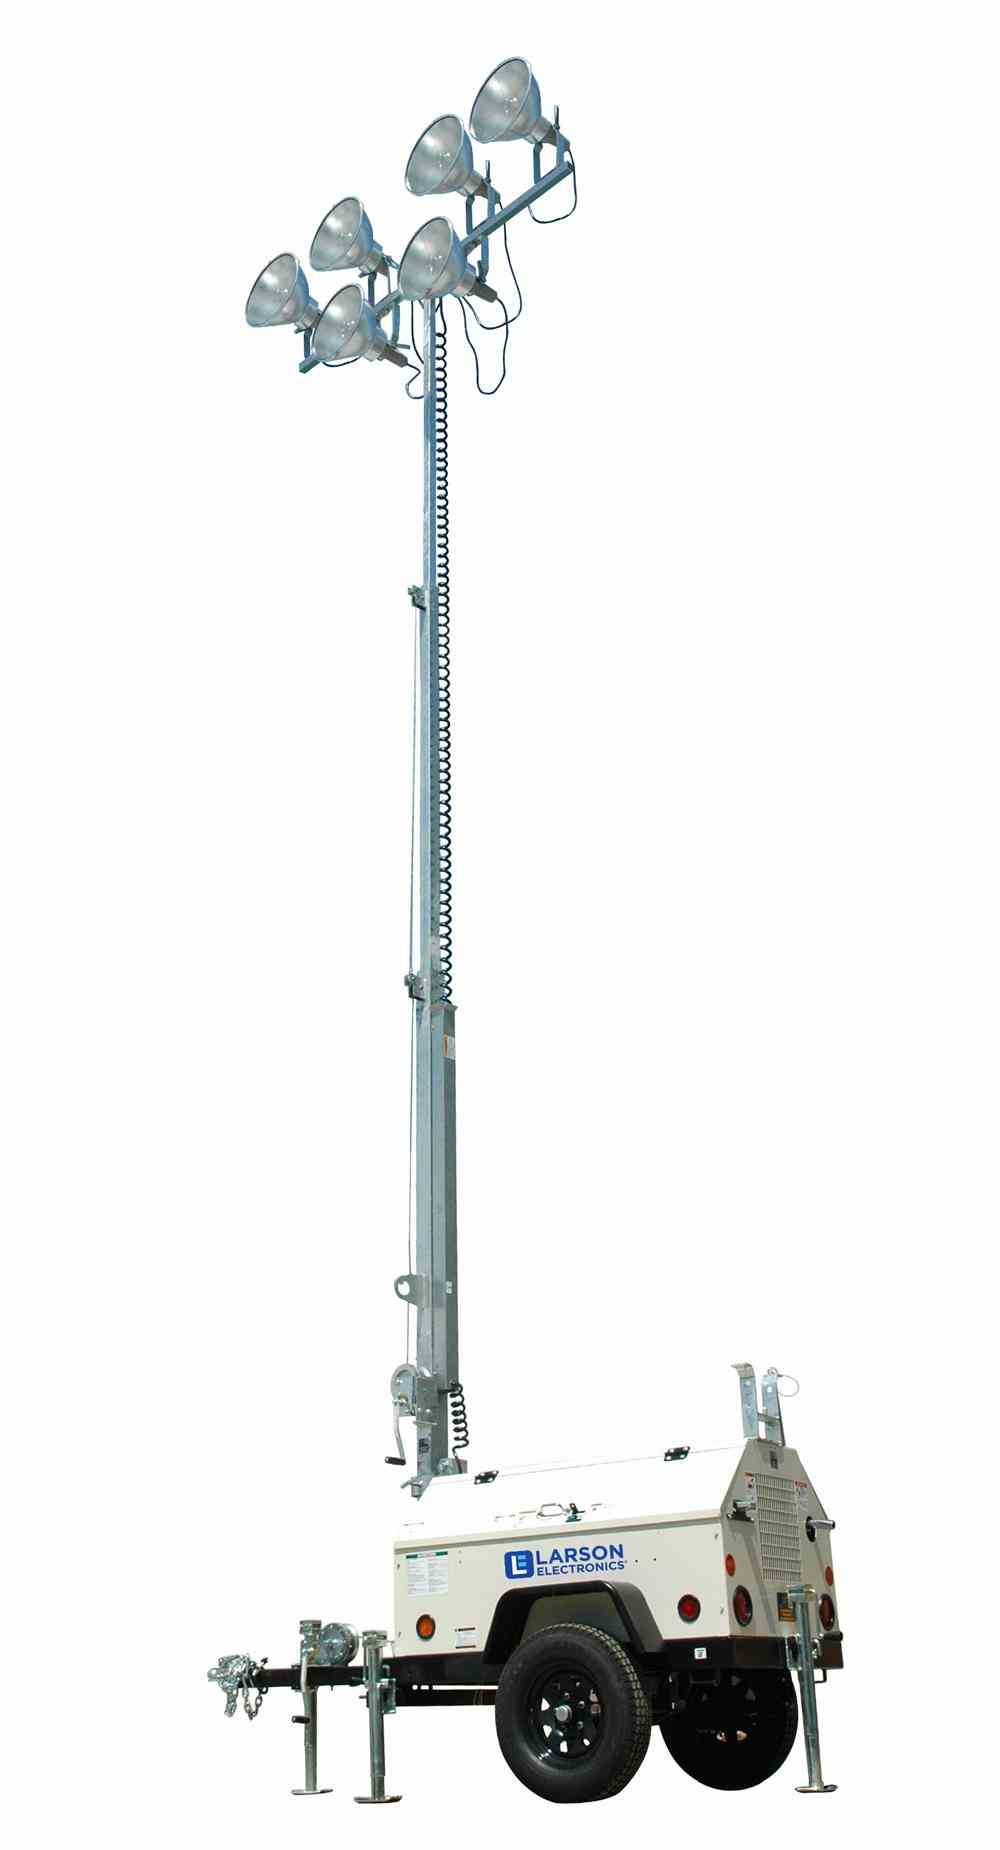 Water-Cooled Diesel Engine Metal Halide Light Tower Can Illuminate 8-9 Acres For More Than 19 Hours